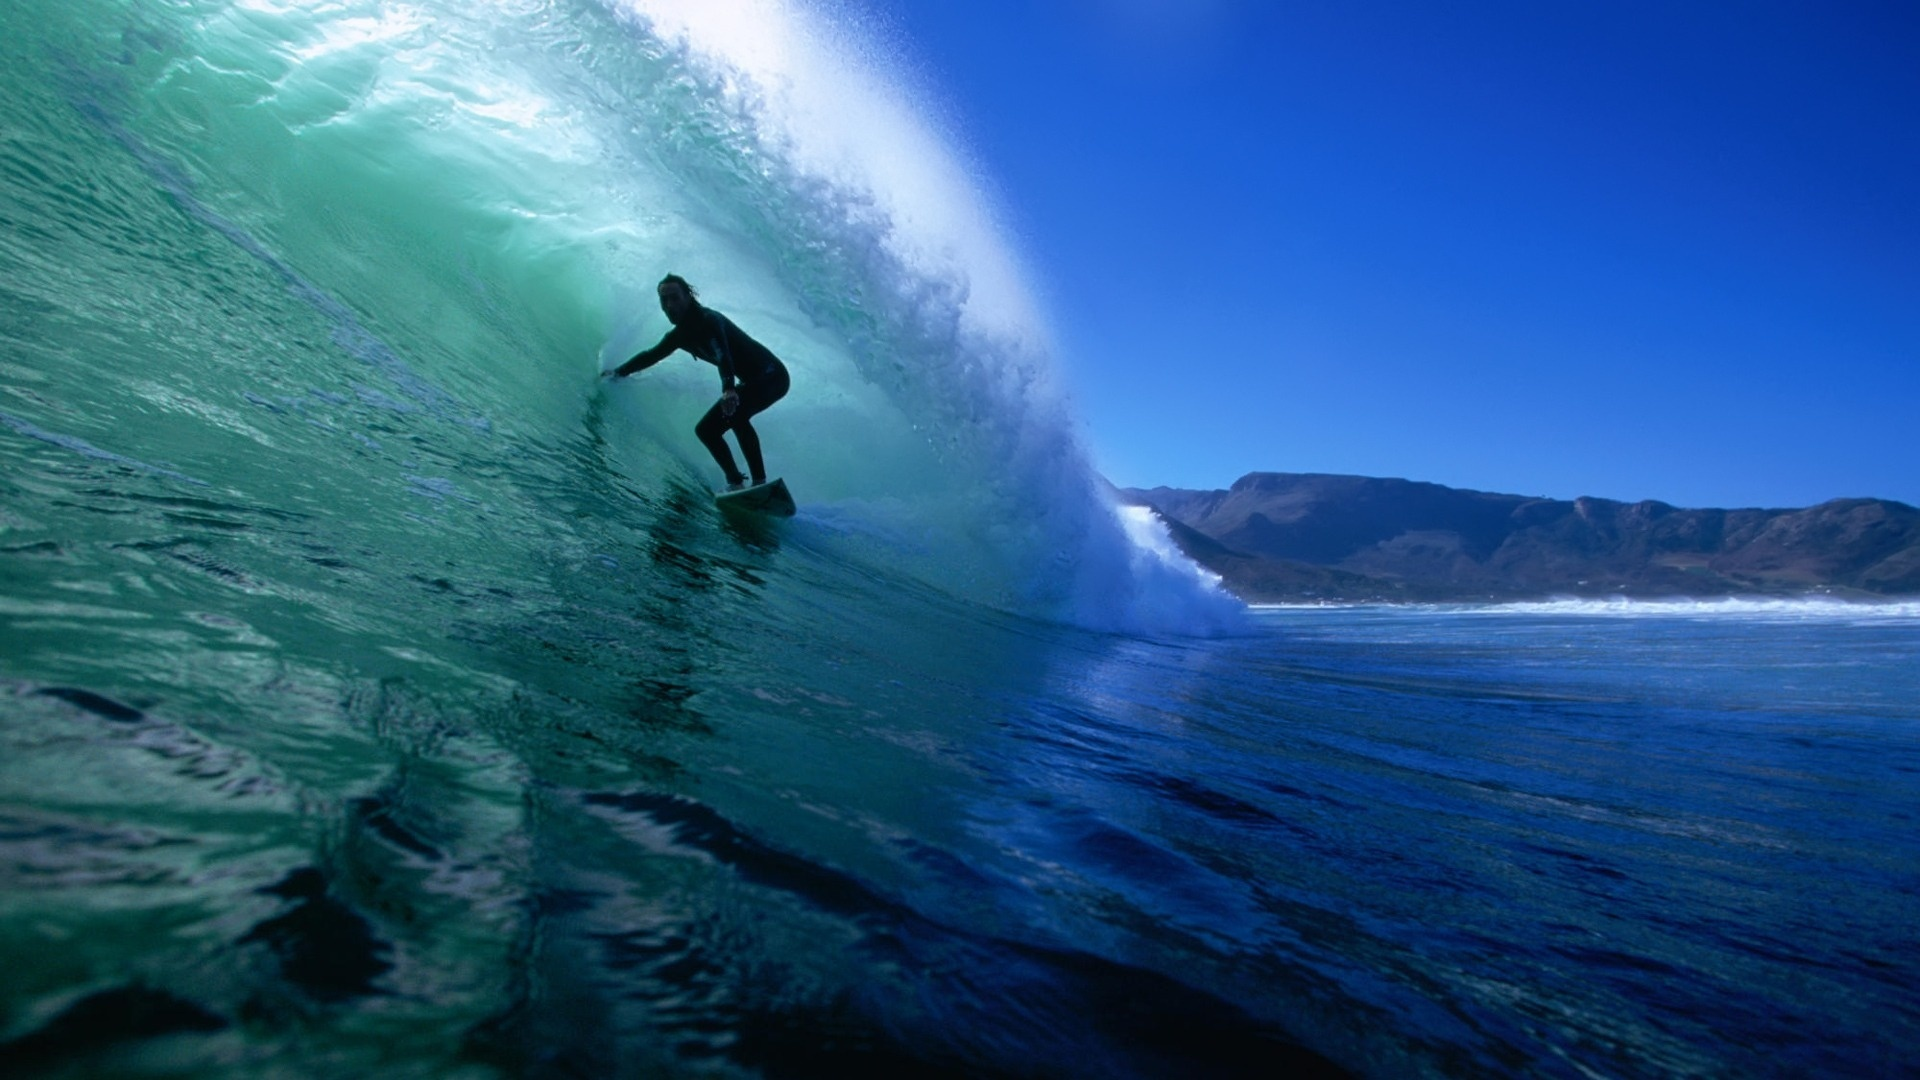 Surfing Wallpapers High Quality Download Free